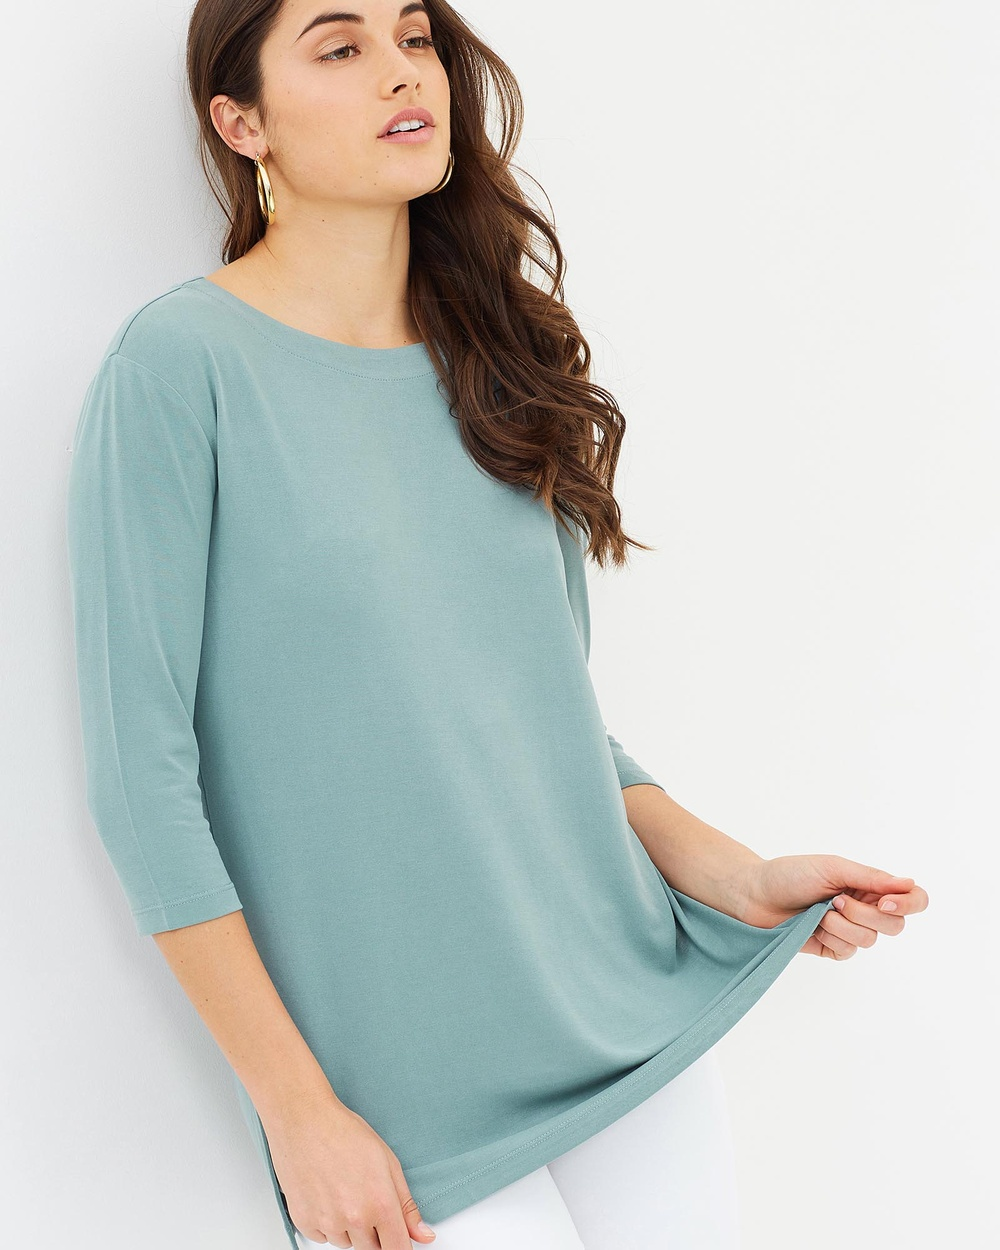 Sportscraft Soft Sandwashed Top Tops Sage Soft Sandwashed Top